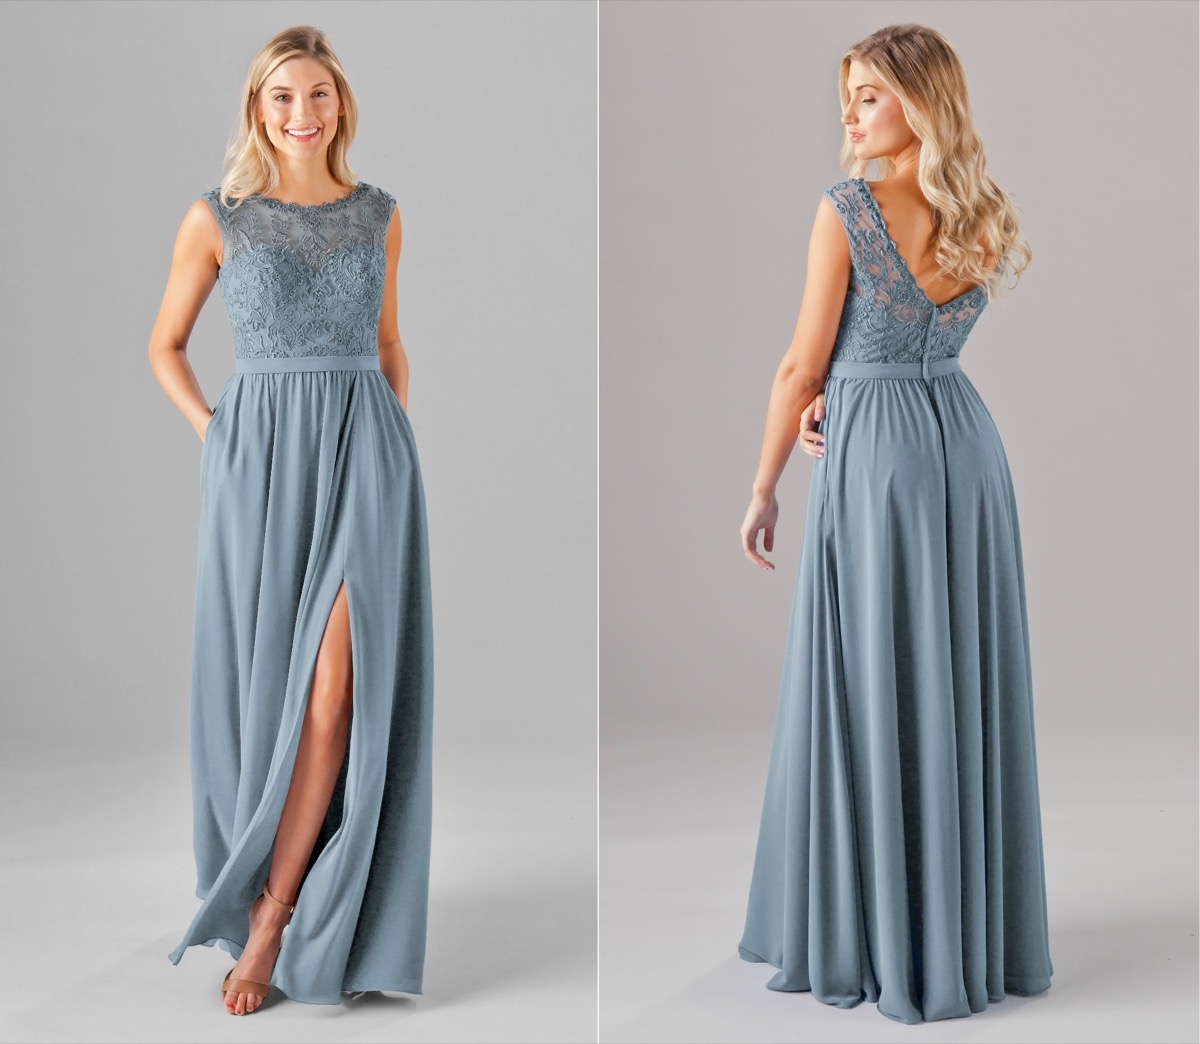 allusion_bodice_sweetheart_neckline_embroidered_lace_bridesmaid_dress.jpg